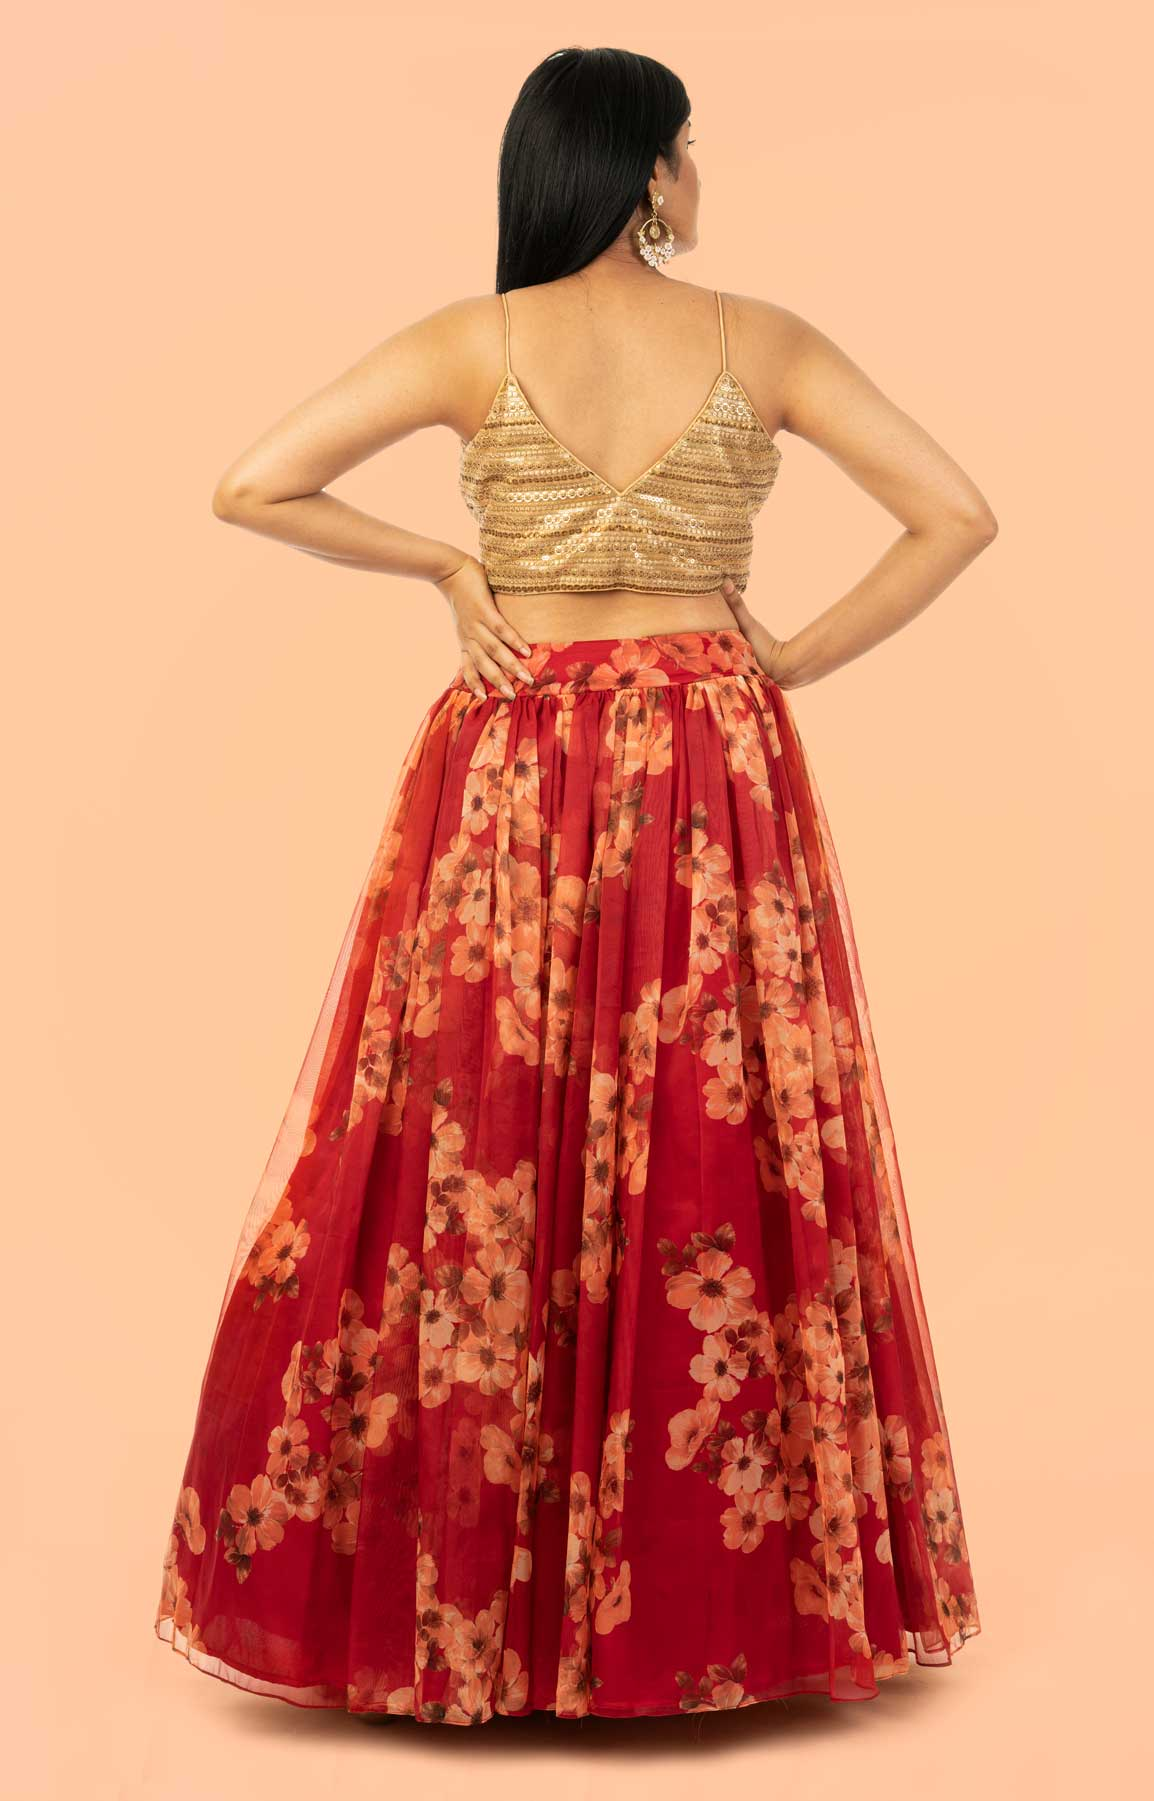 Poppy Red Lehenga In Mustard Floral Motif Print Matched With Golden Embroidered Blouse – Viraaya By Ushnakmals